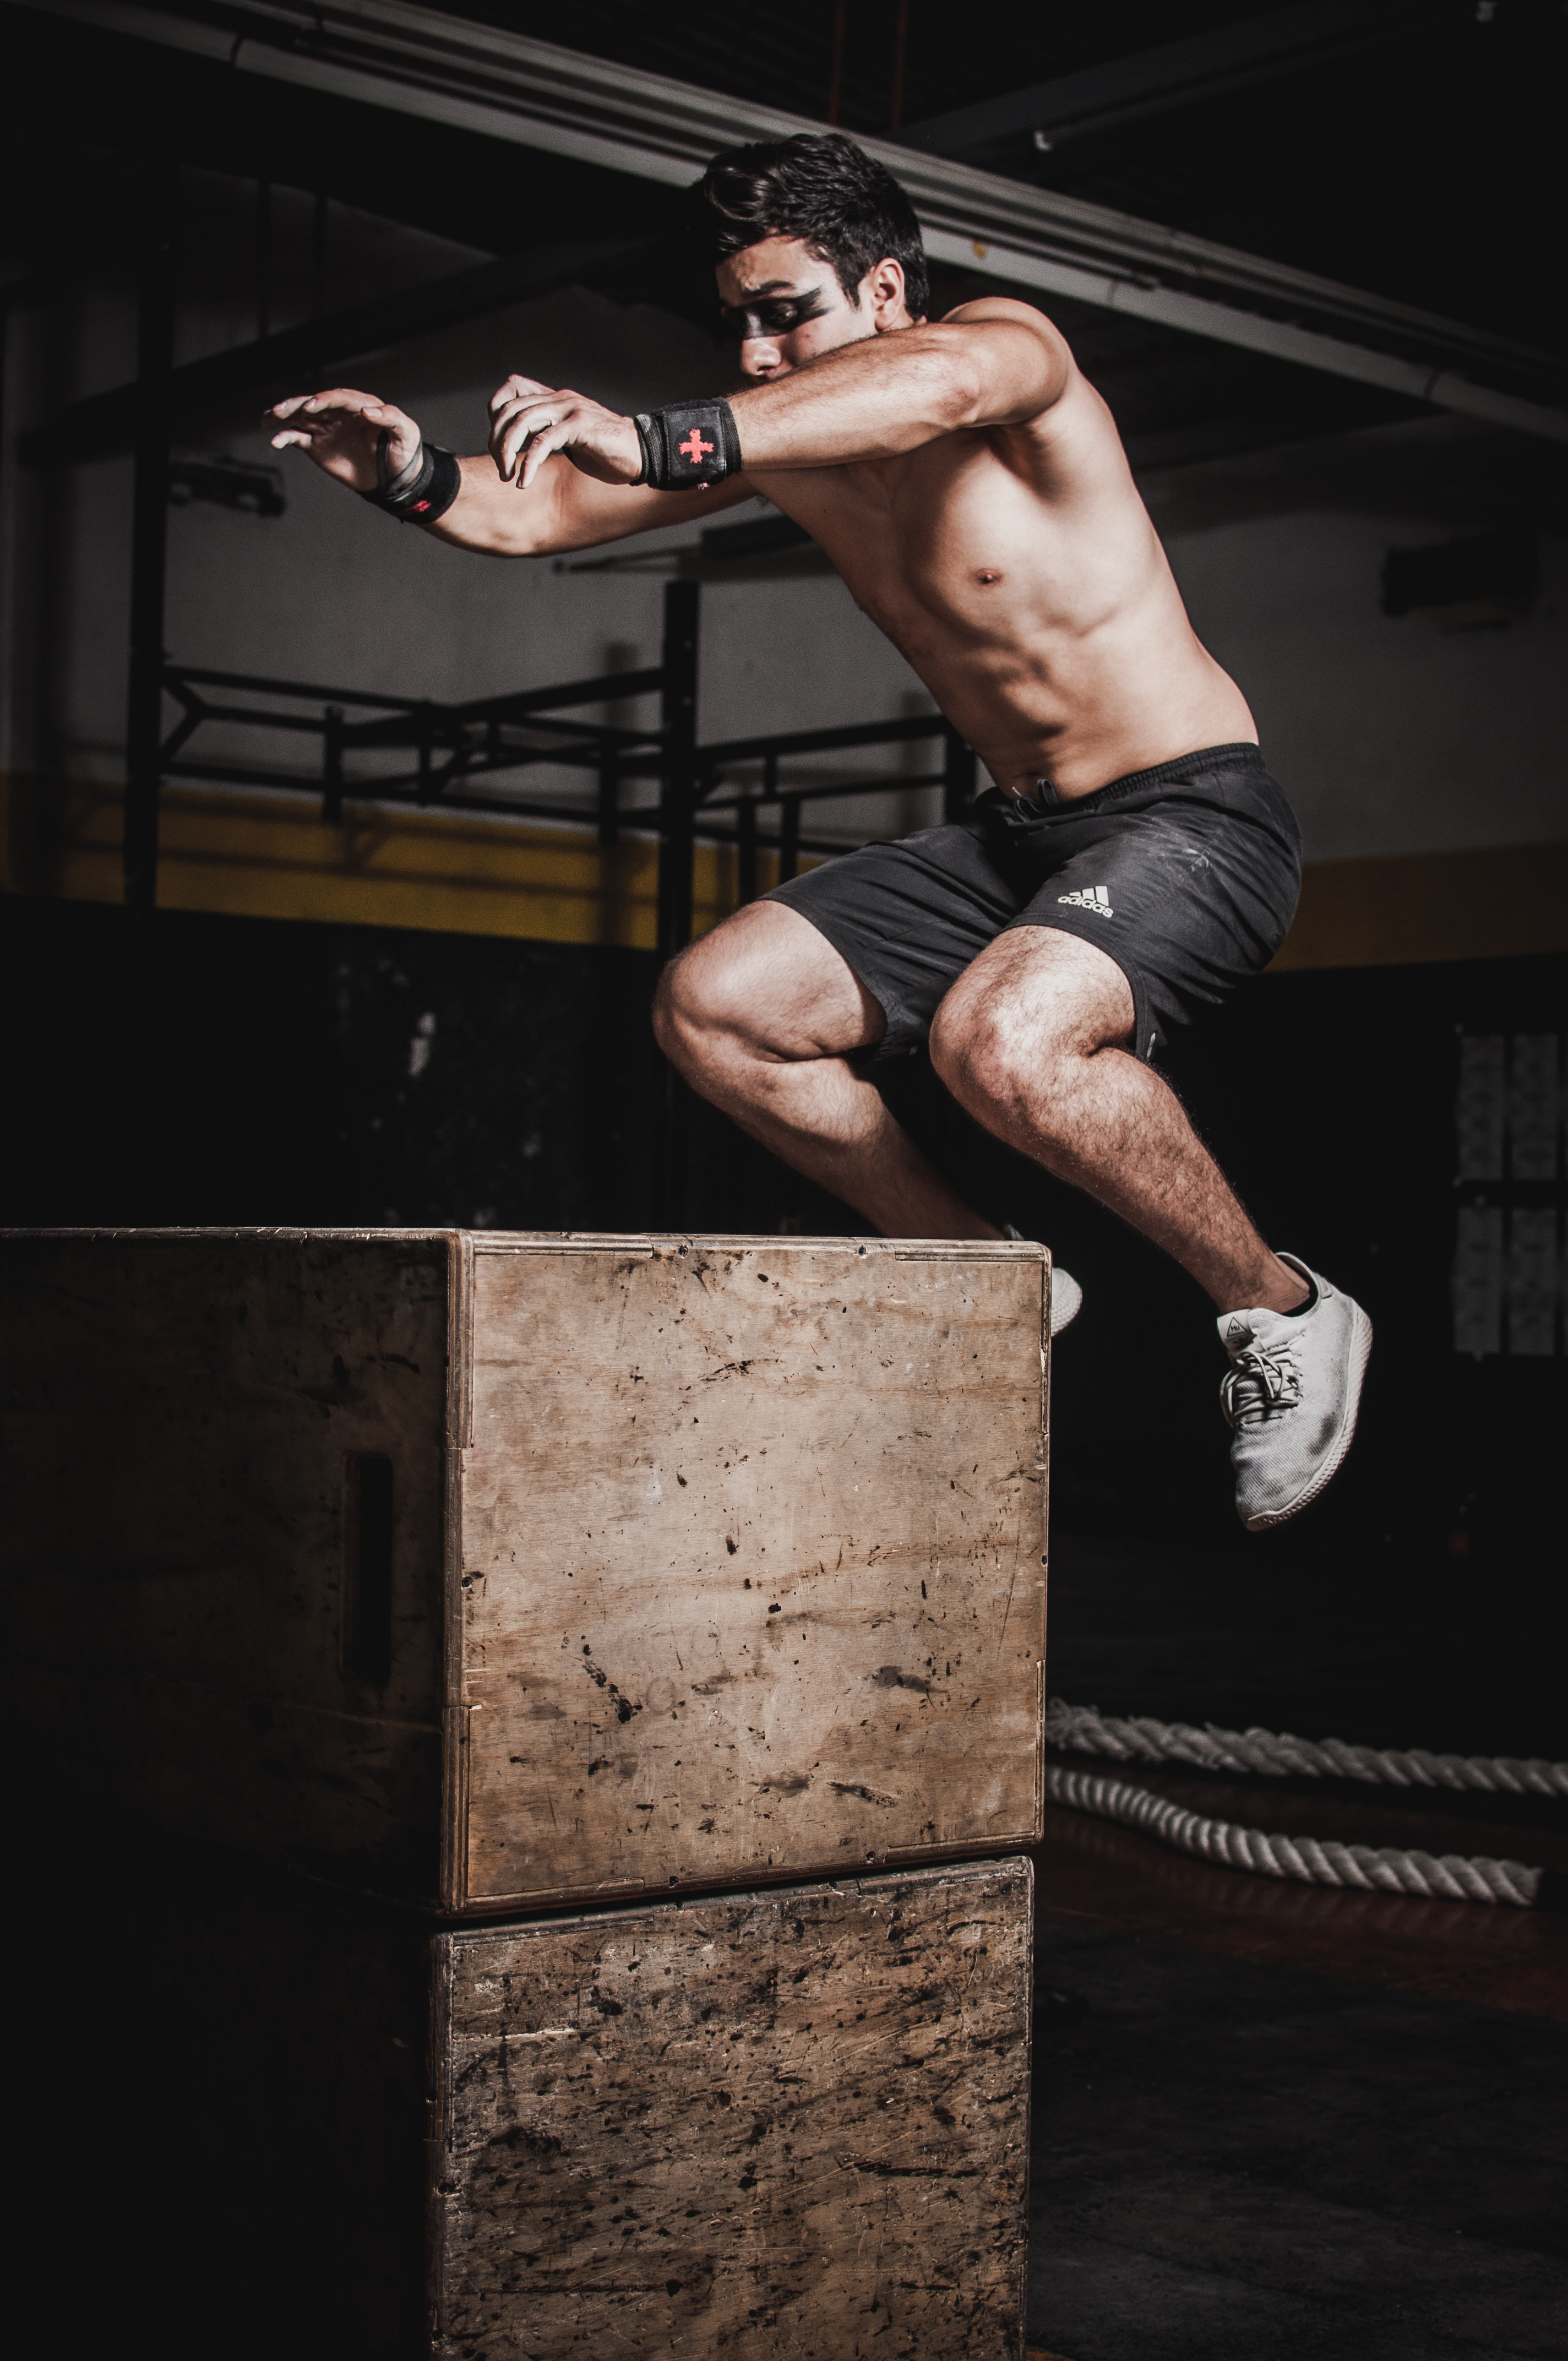 photo-of-man-jumping-on-box-1552248